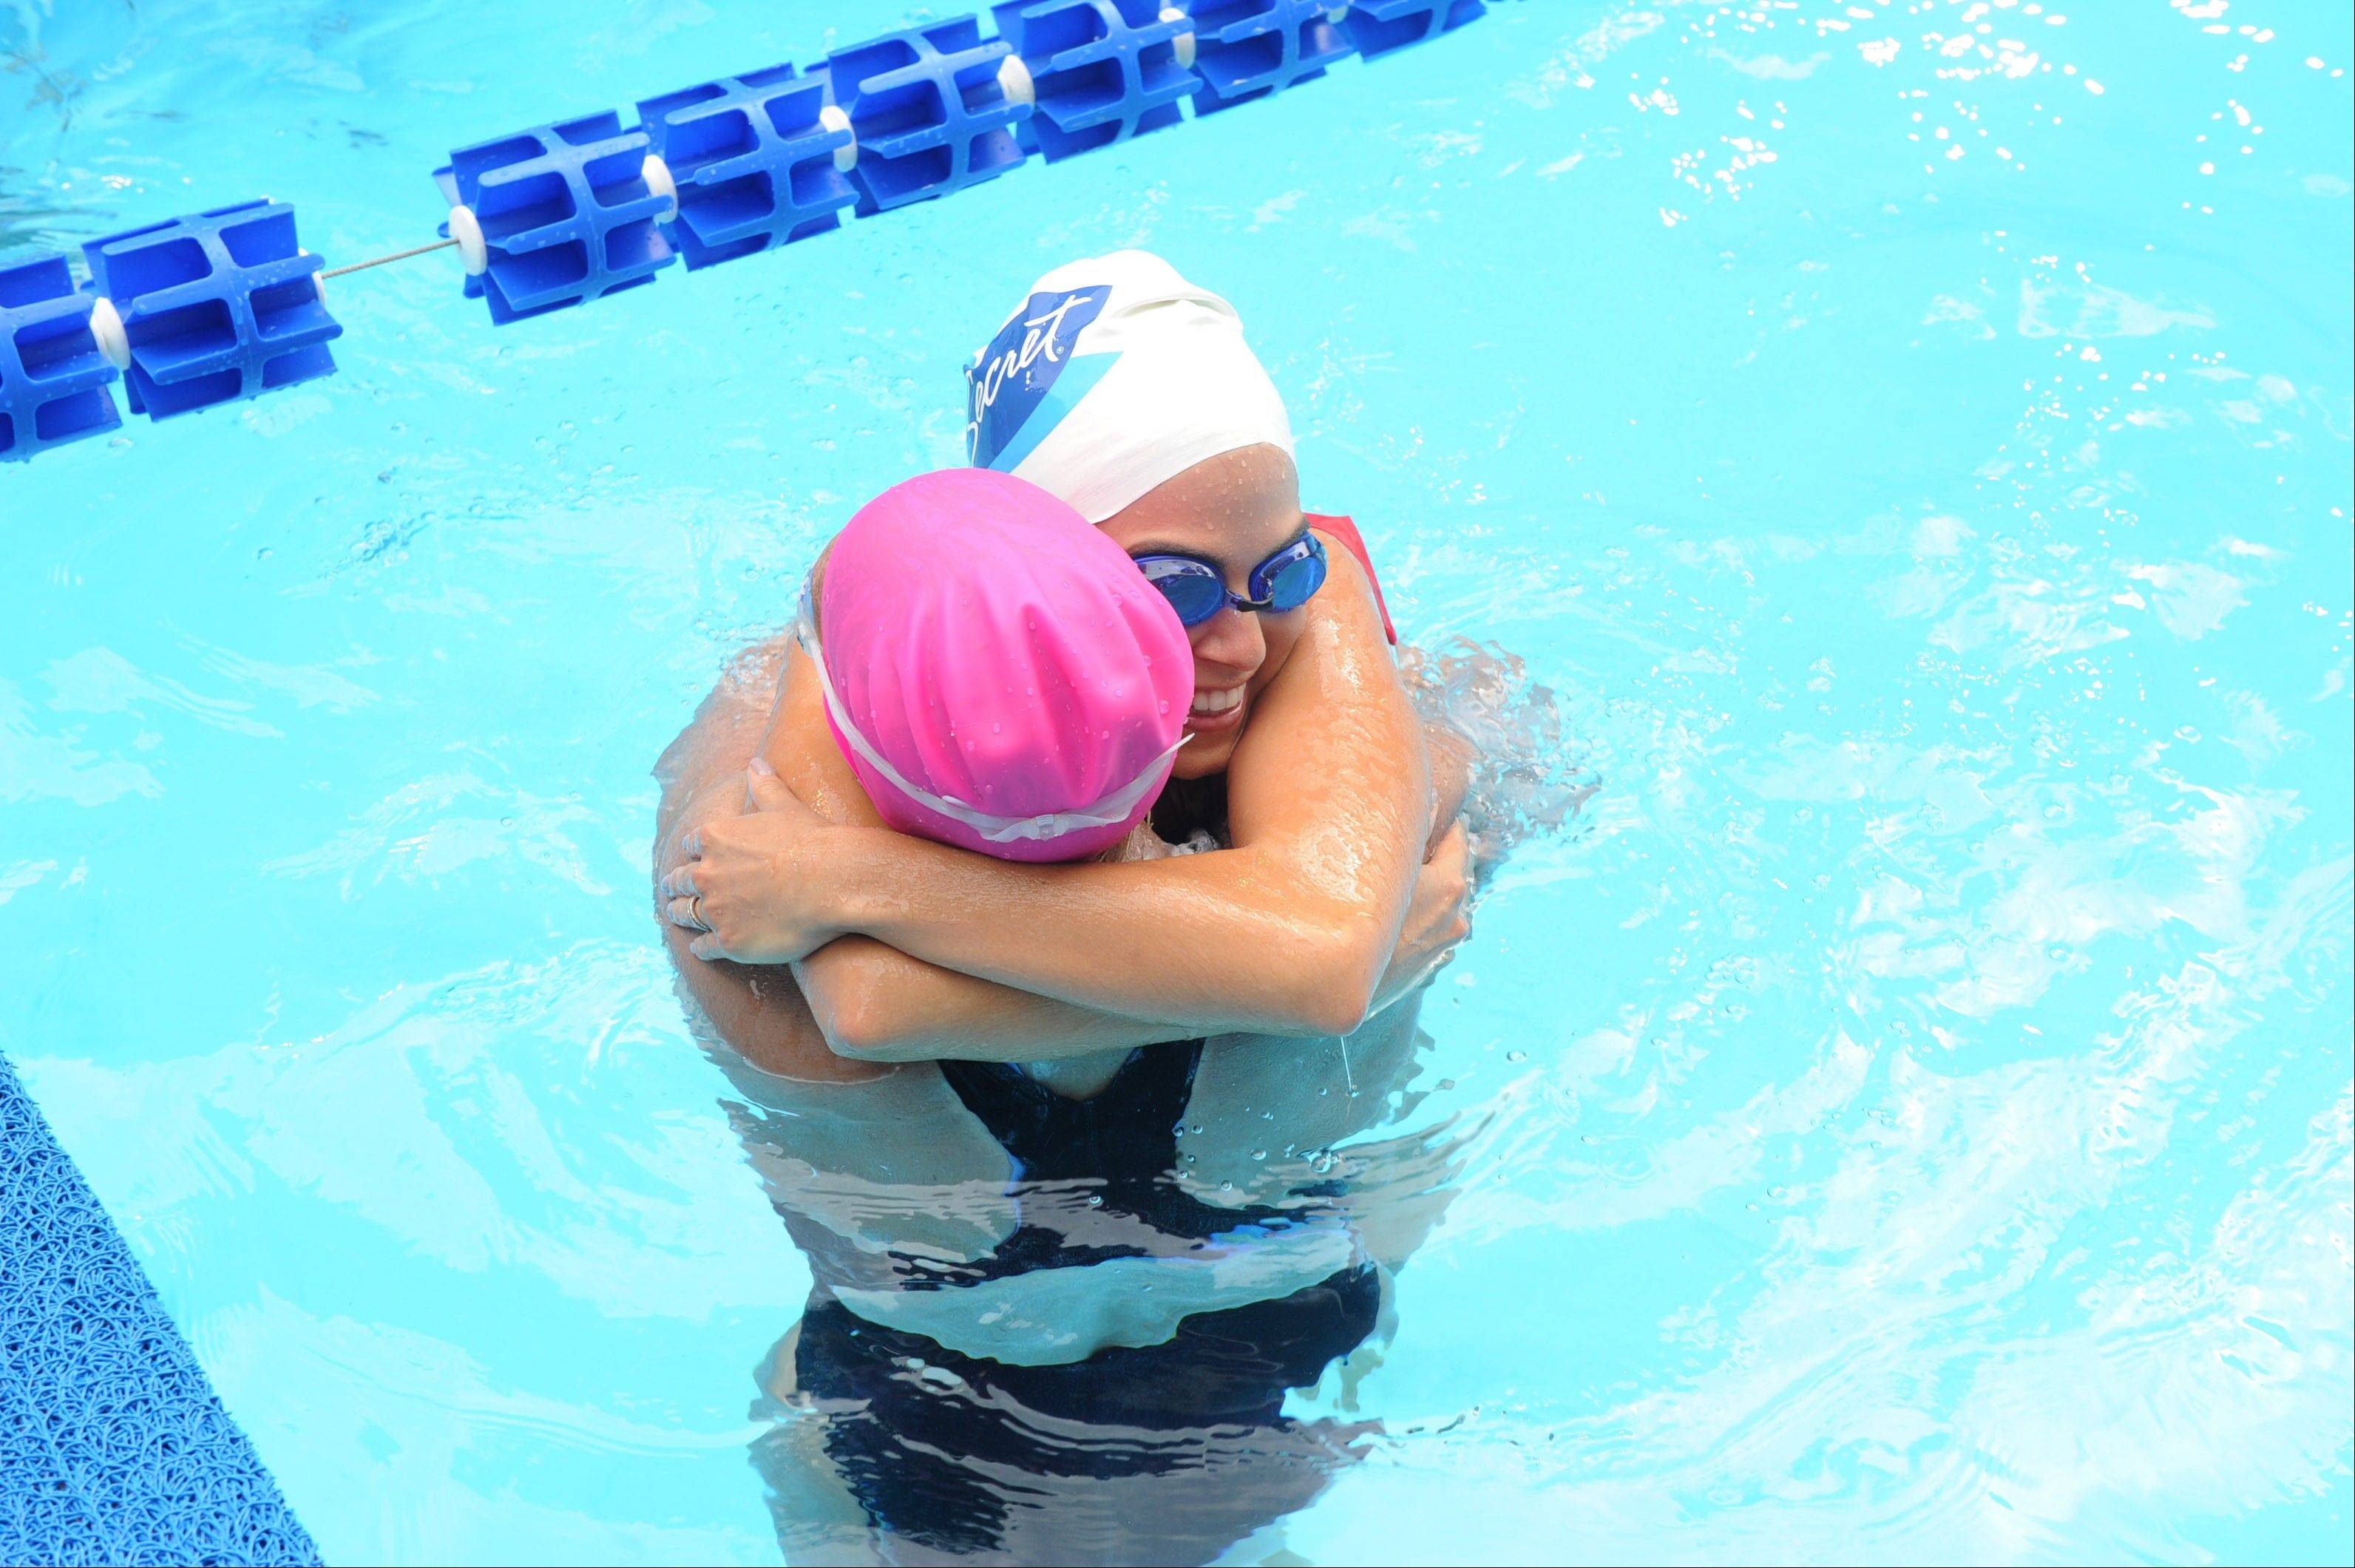 Associated Press/ Invision for P&G Actress Nikki Reed hugs long-distance swimmer Diana Nyad during her 48-hour continuous �Swim for Relief� to support Hurricane Sandy recovery efforts, Wednesday, Oct. 9, 2013, in New York�s Herald Square.